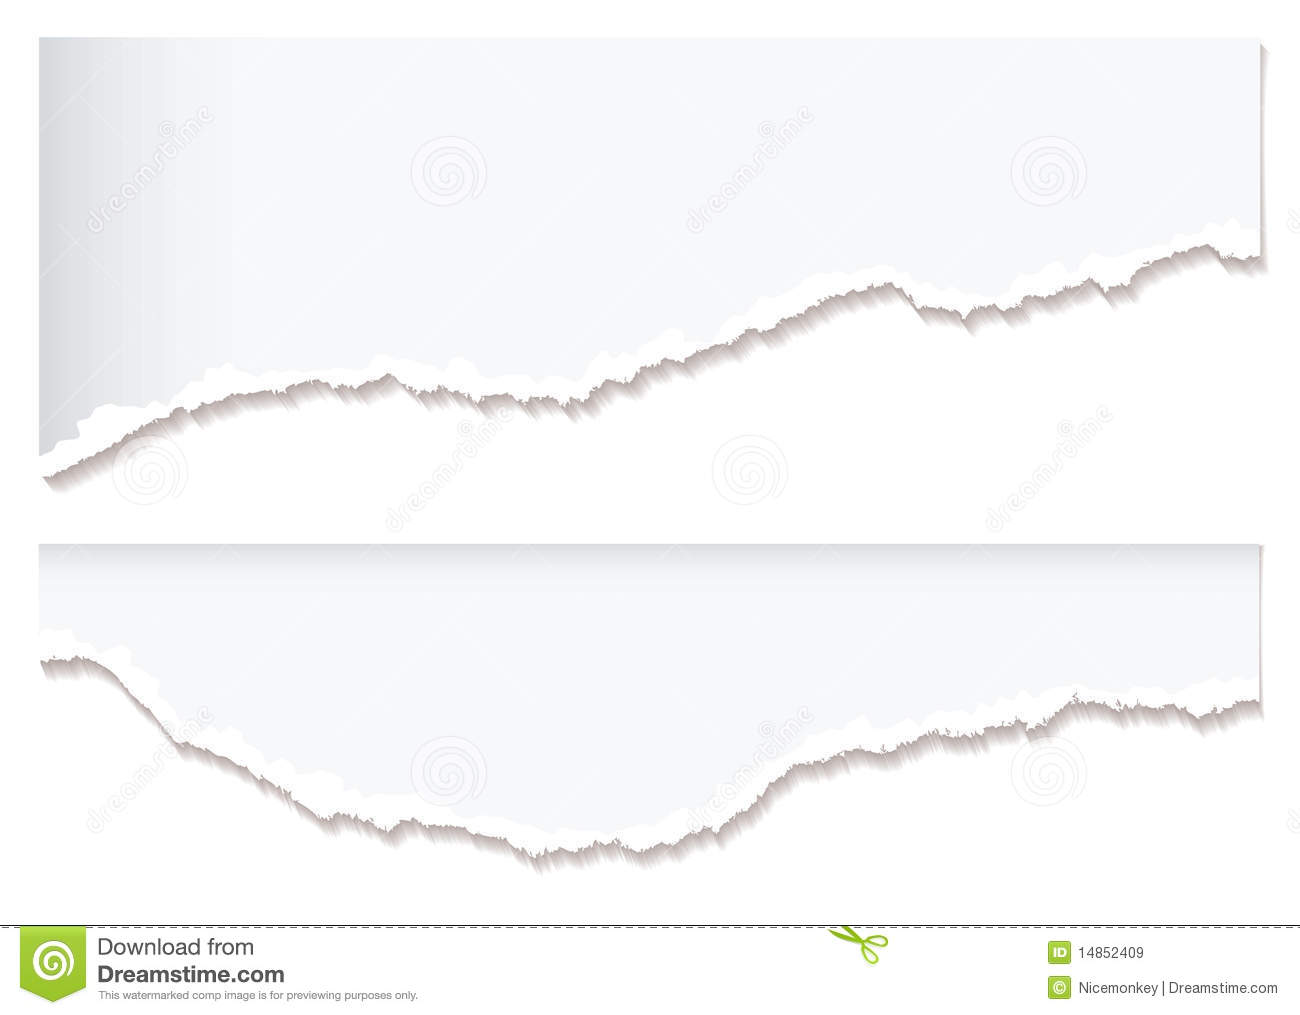 White Paper Rip Edge Royalty Free Stock Images - Image: 14852409: www.dreamstime.com/royalty-free-stock-images-white-paper-rip-edge...